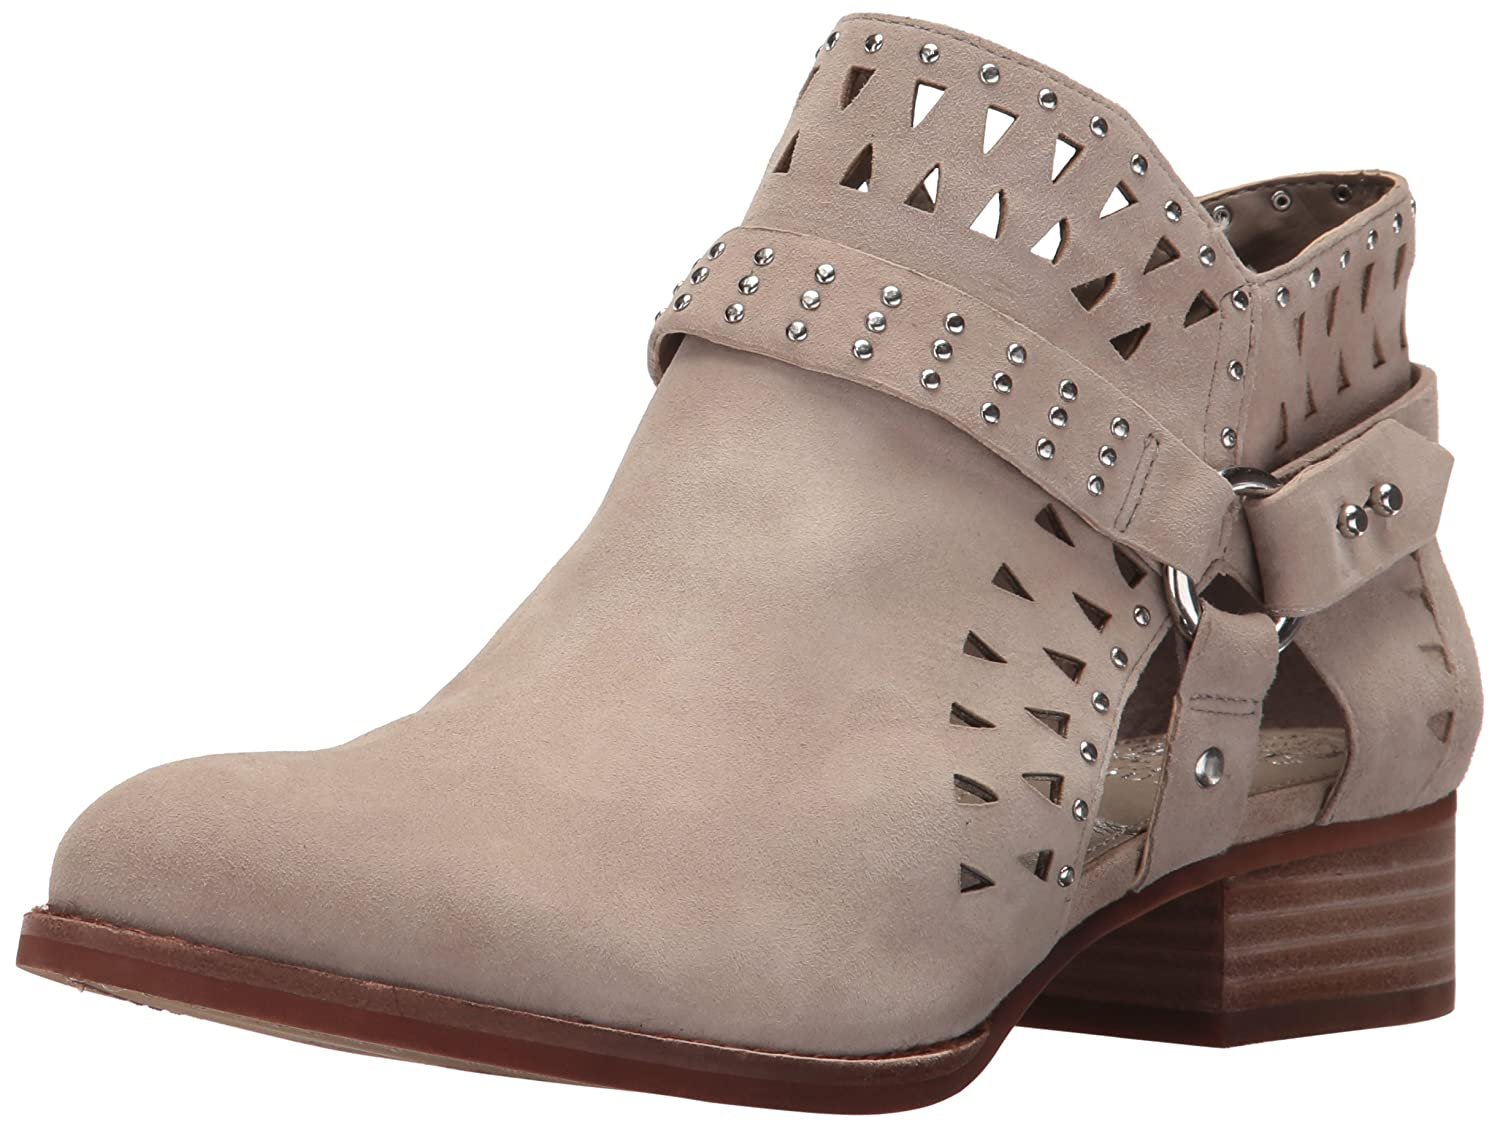 Vince Camuto Women's Calley Ankle Boot B01MS6XI8K 9.5 B(M) US|London Fog